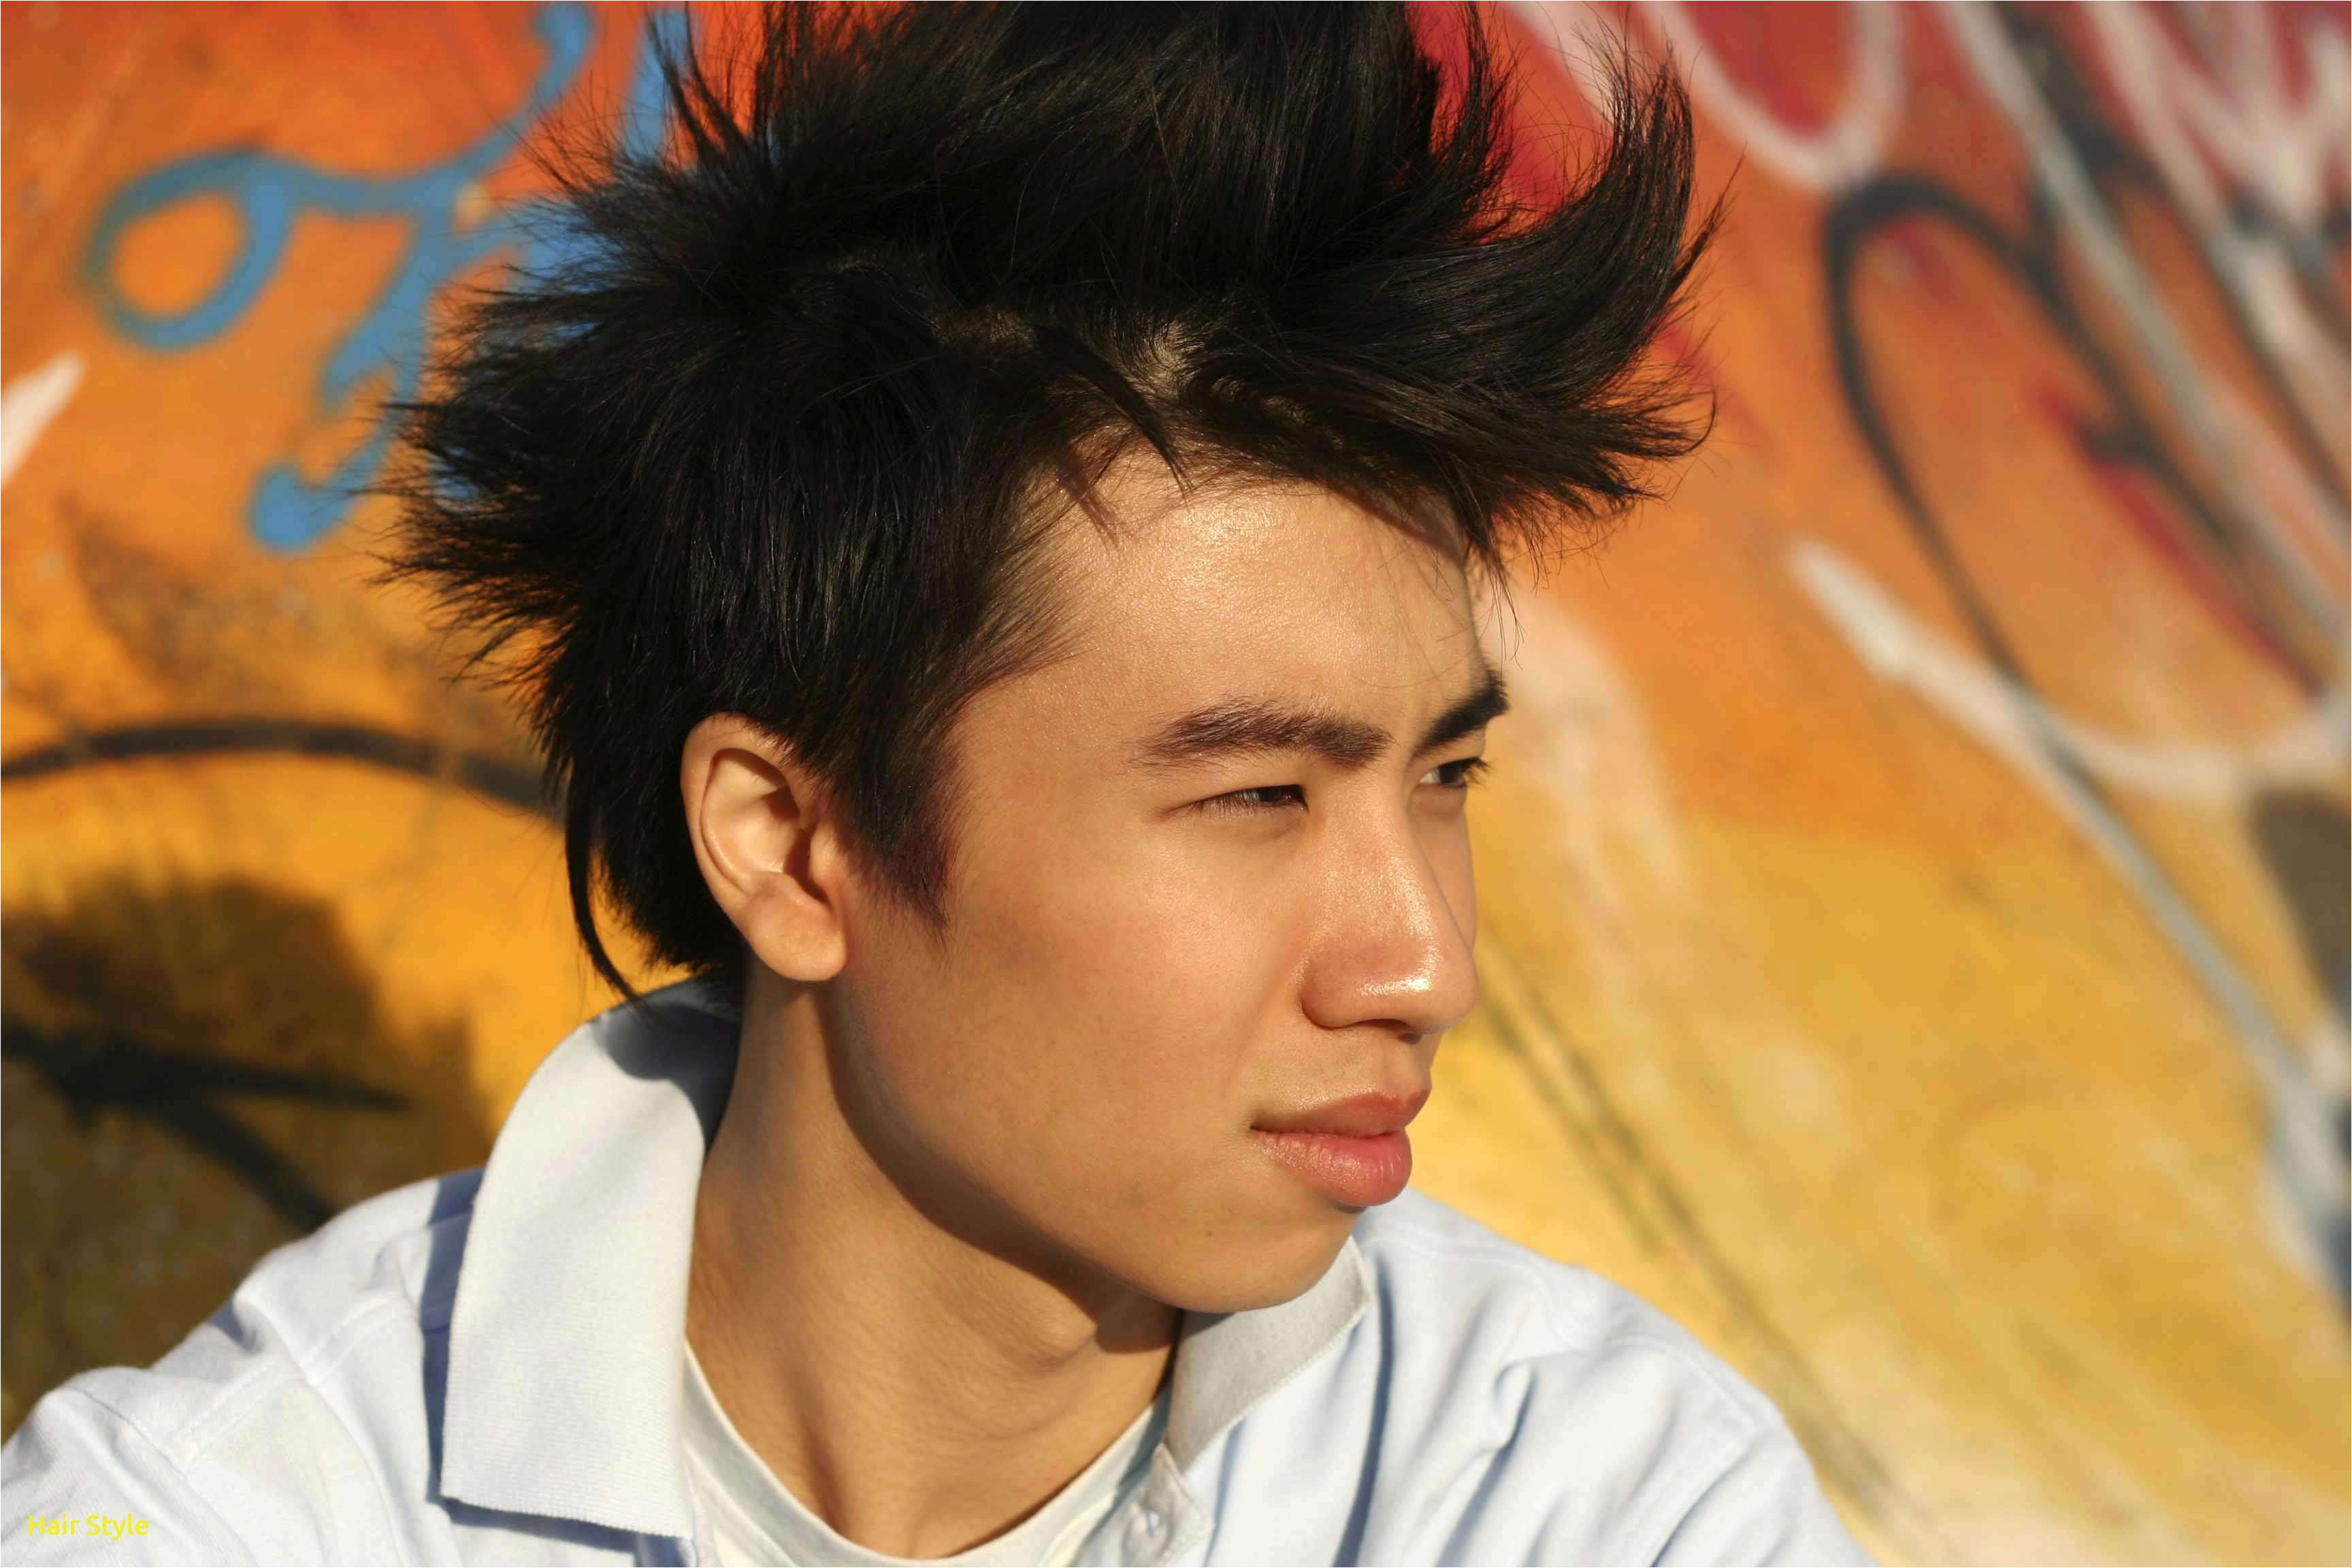 Asian Hair Styles Male Inspirational Hairstyle For Asian Men Hairstyles For Big Foreheads Men